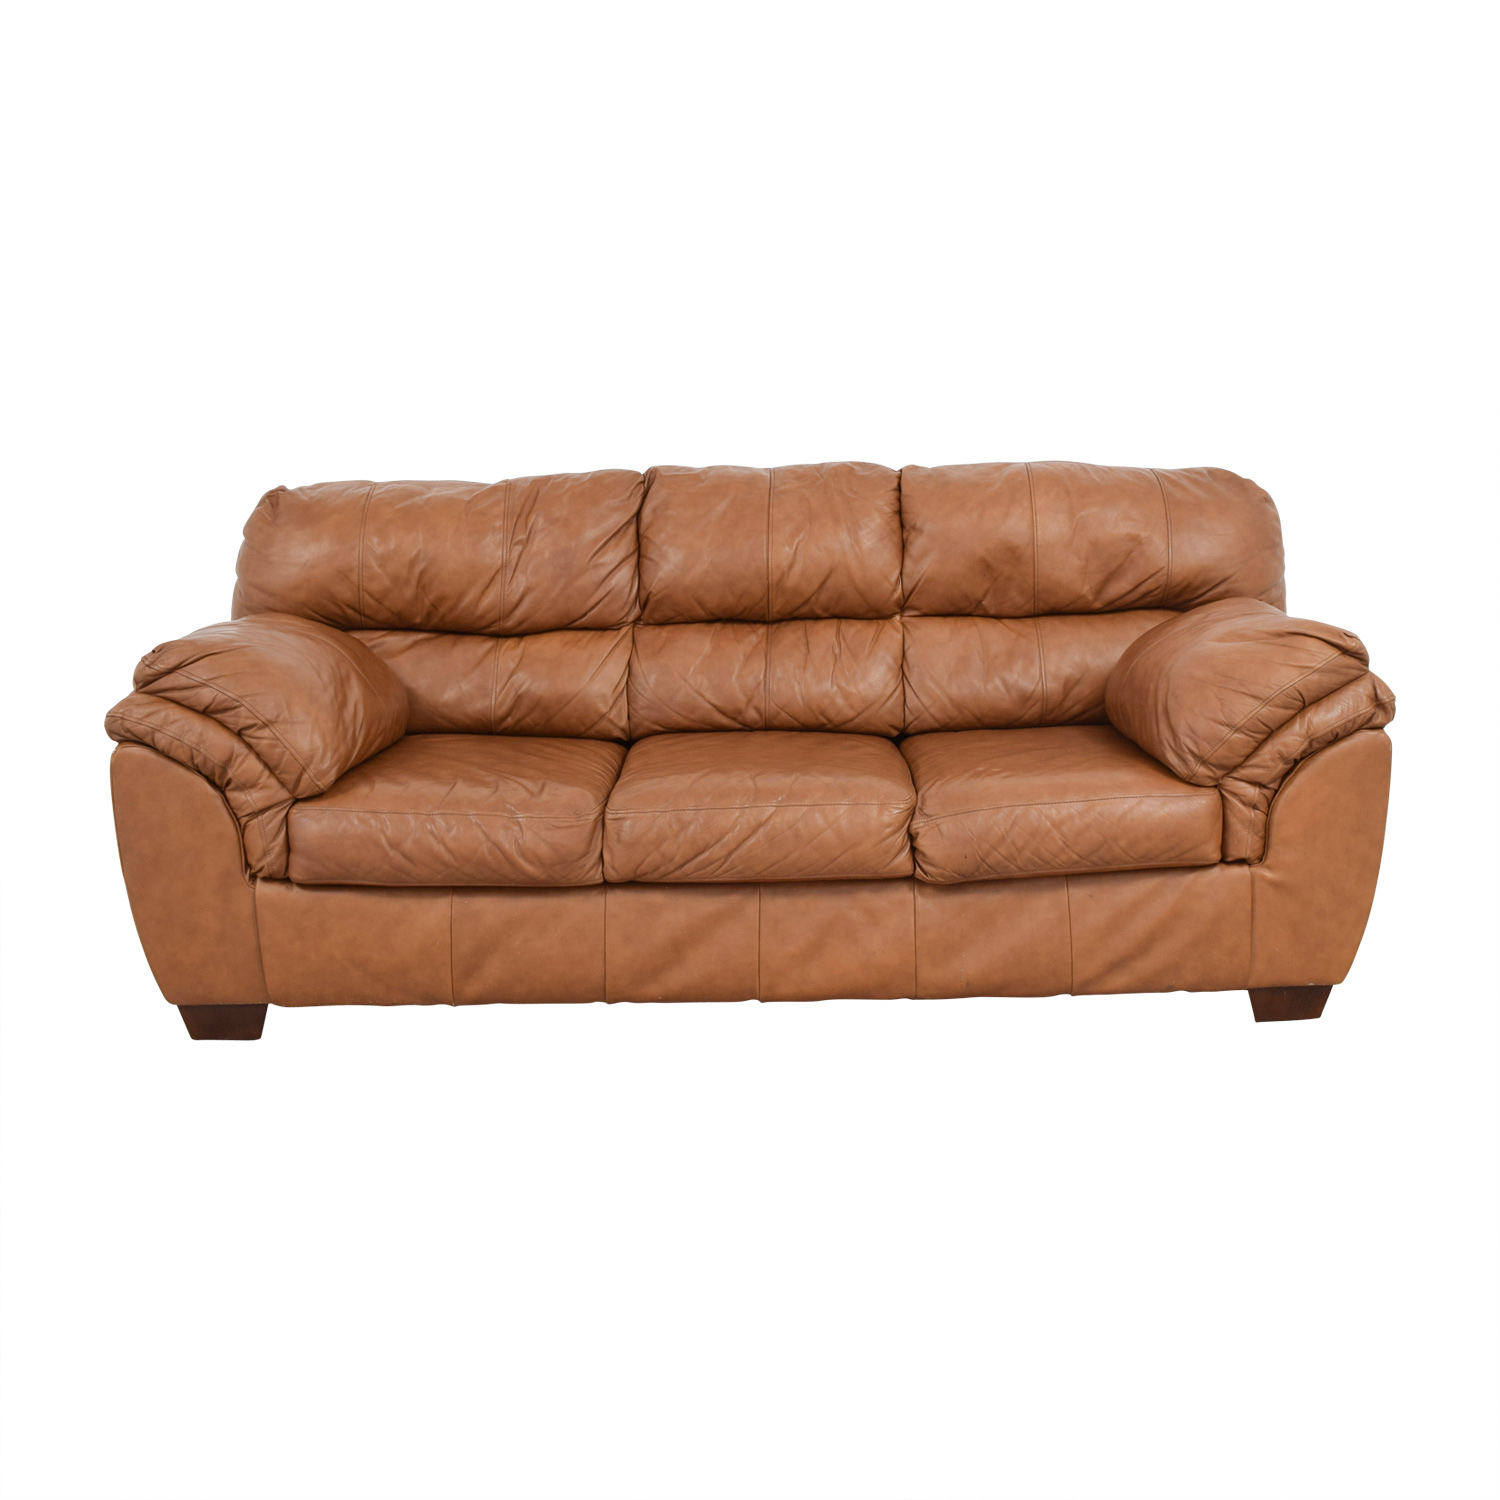 Paprika Leather Three-Cushion Sofa brown